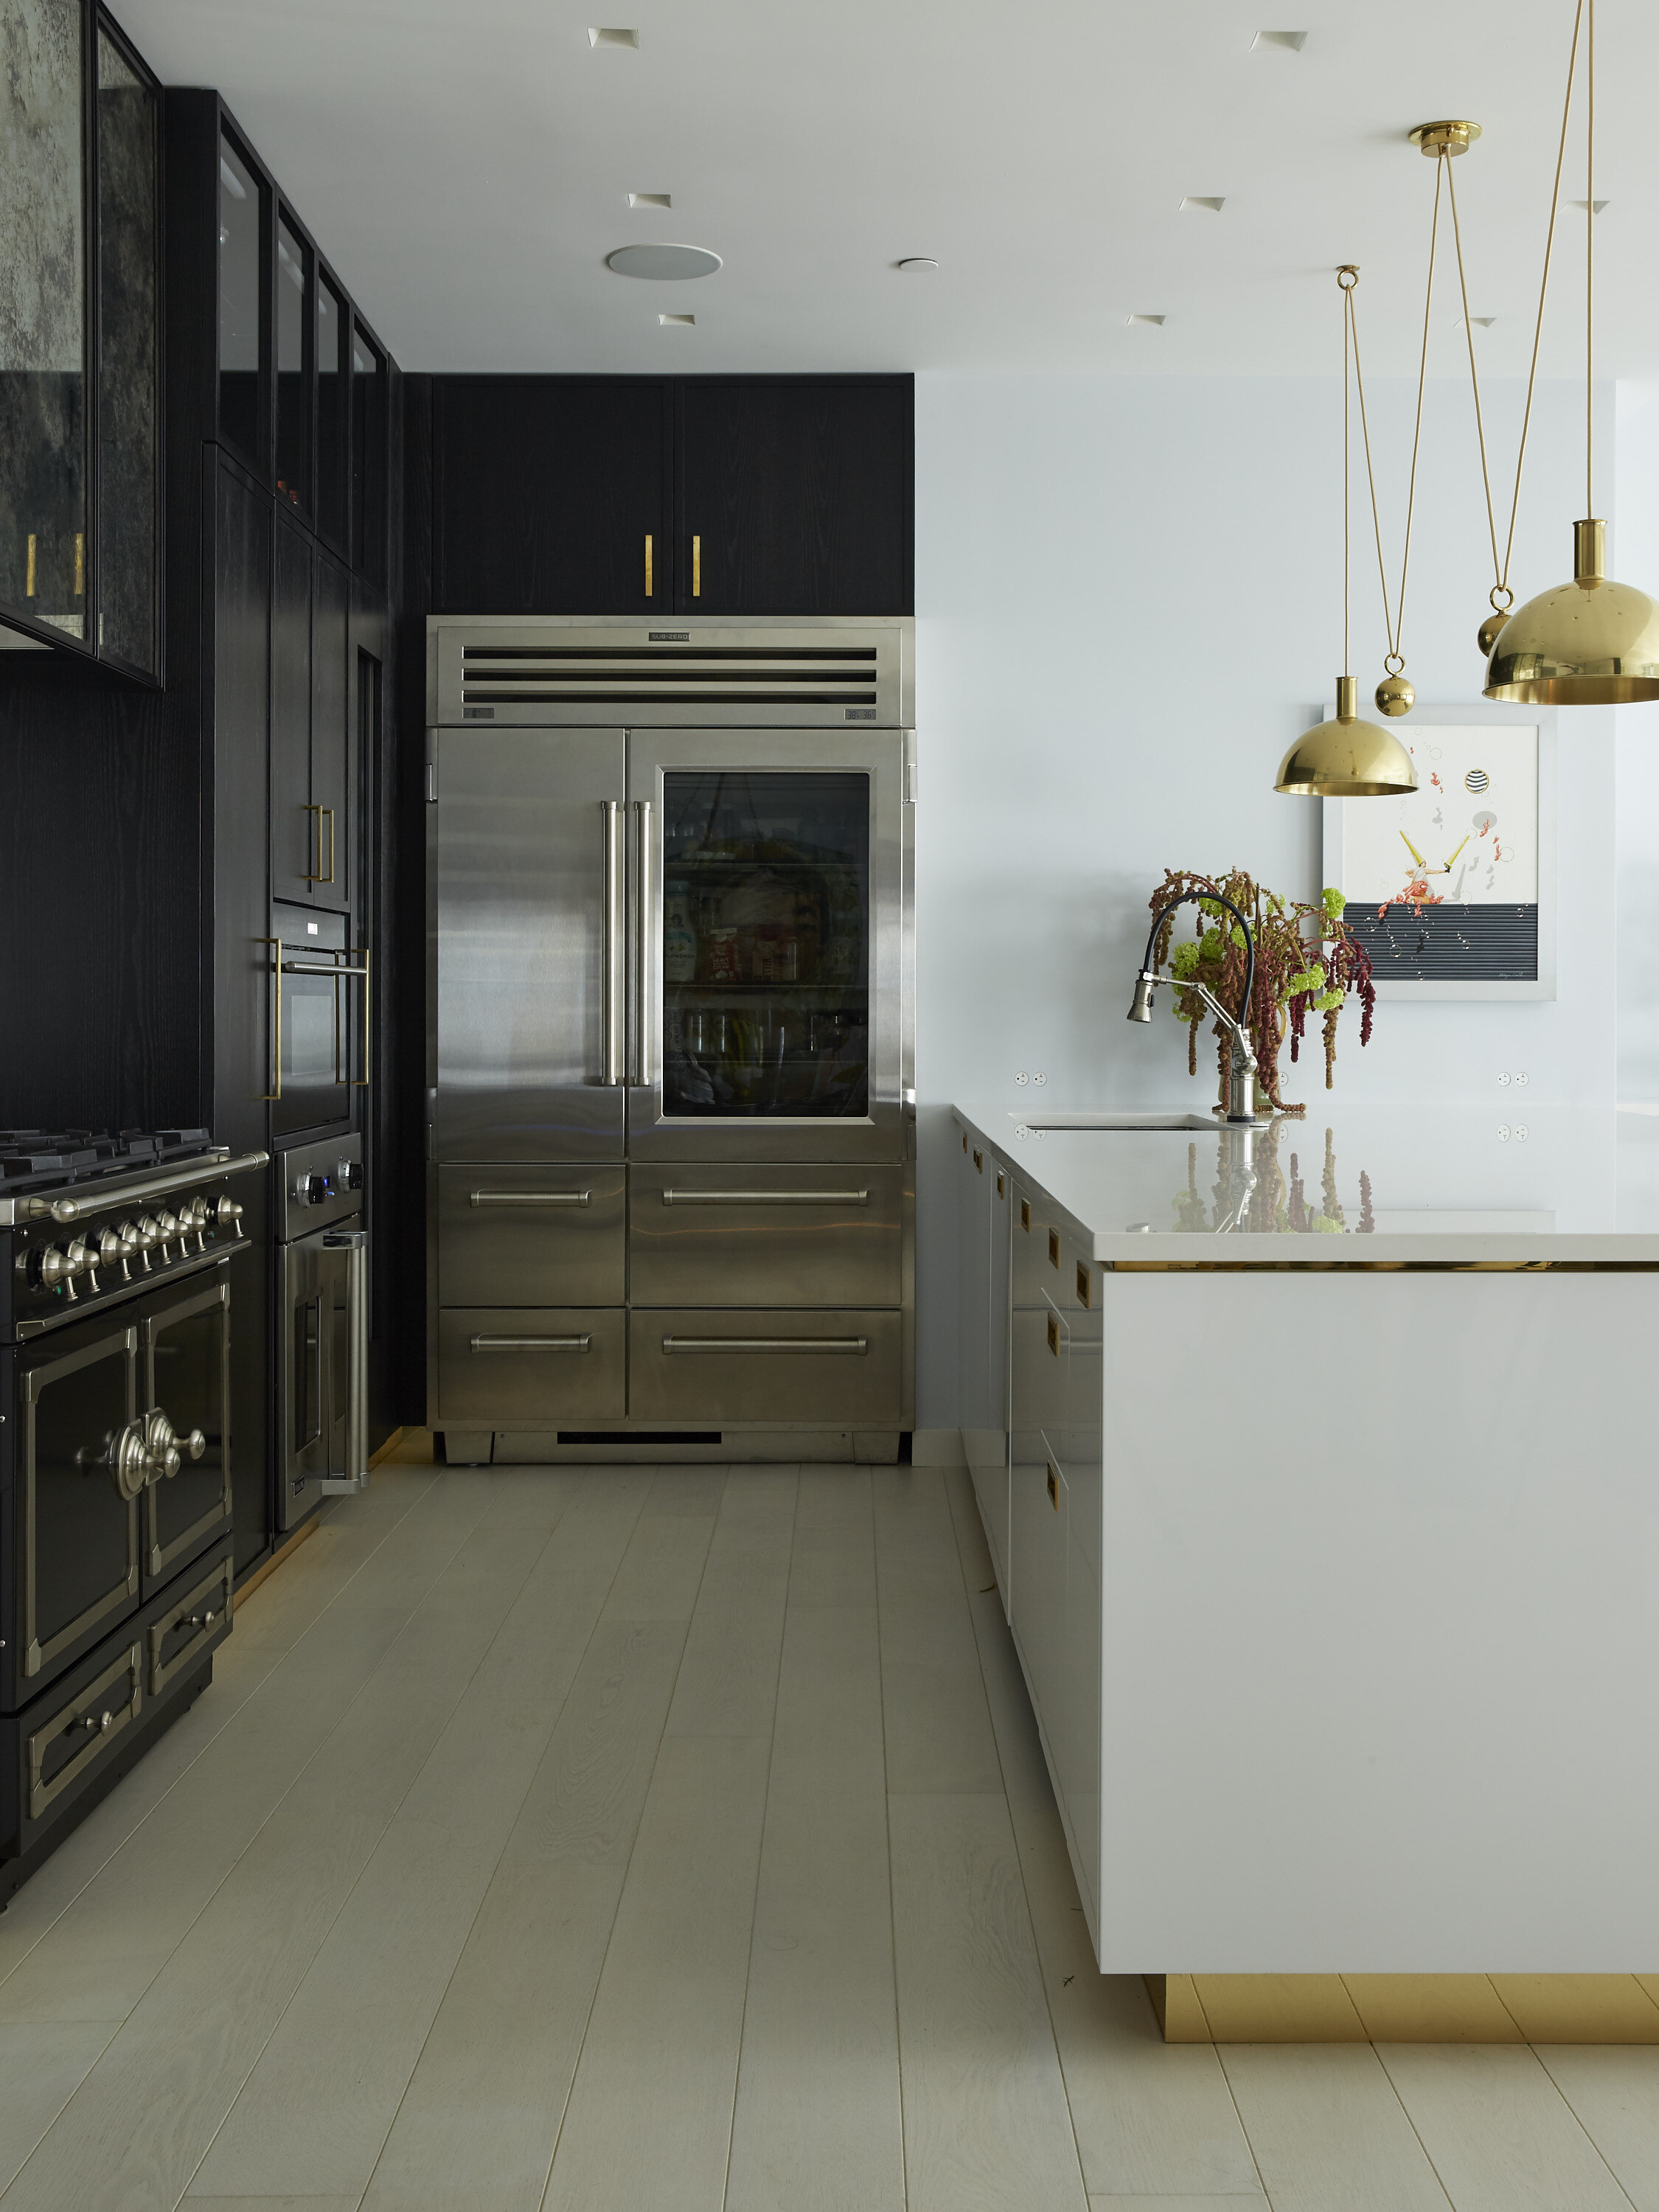 04 Kitchen_003.jpg